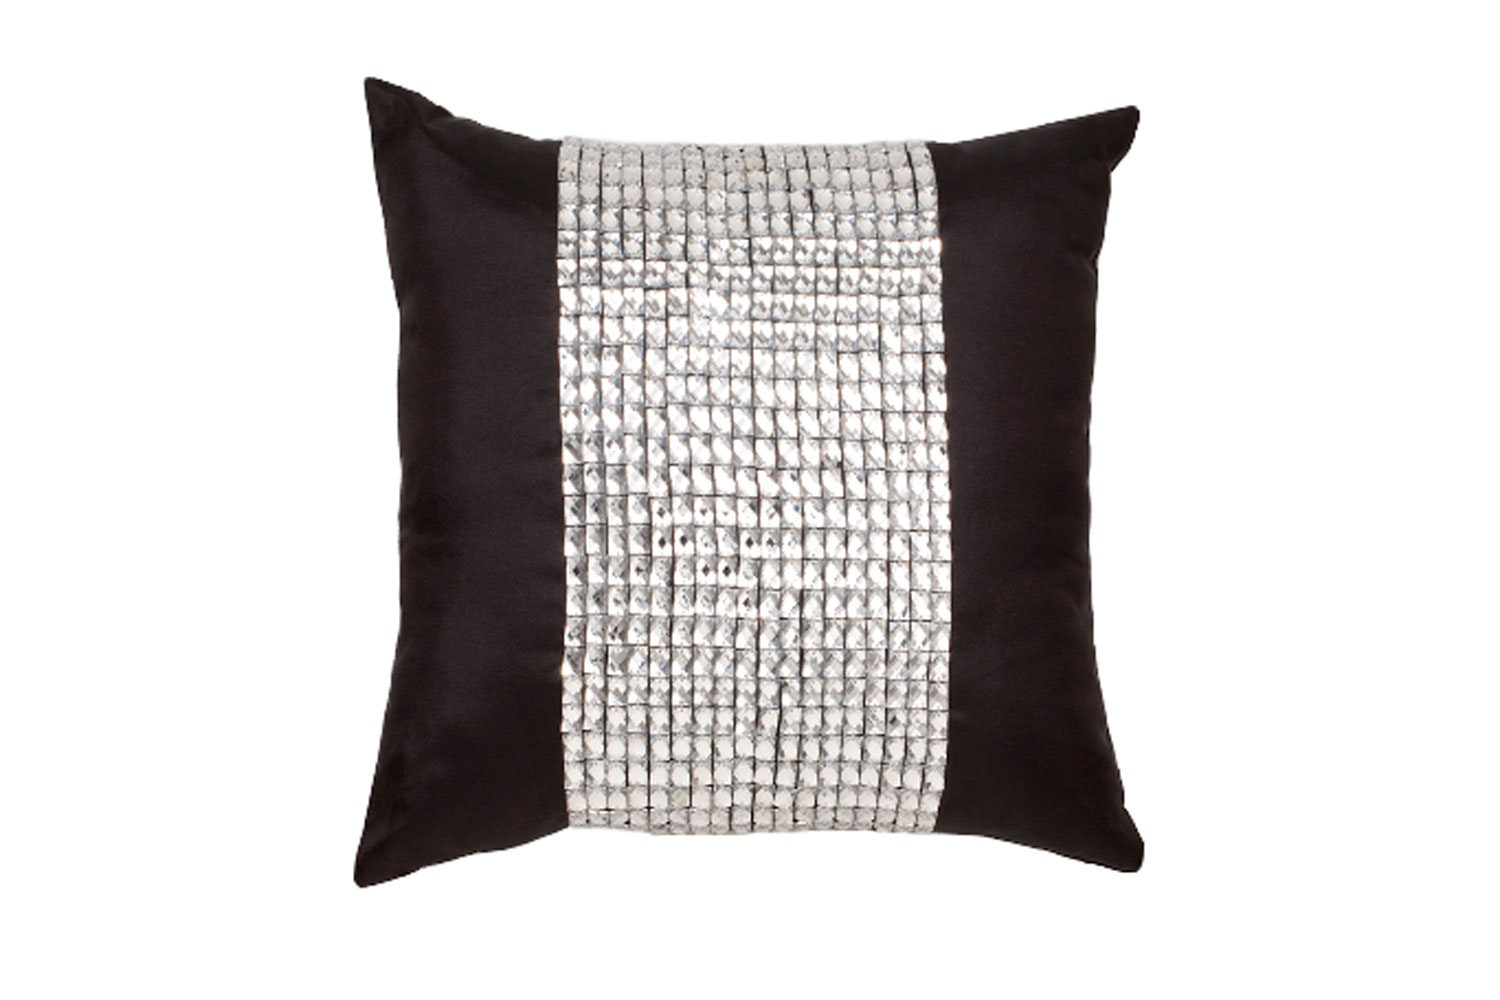 Bling Cushions by Ultima